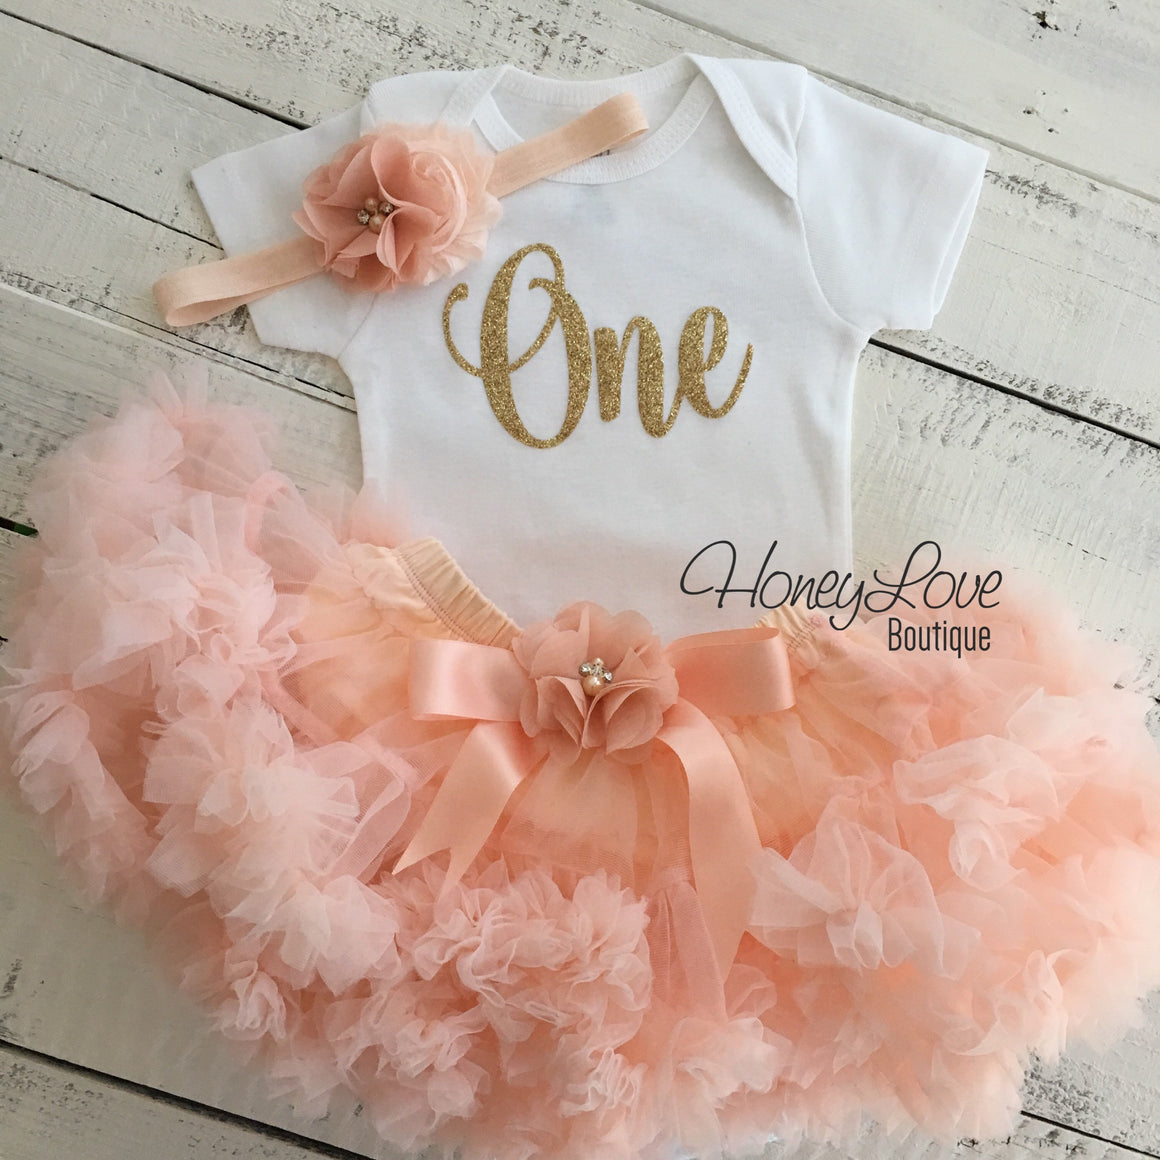 One - gold glitter bodysuit, embellished peach ruffle pettiskirt tutu skirt, flower rhinestone headband bow, First Birthday, 1st Cake Smash - HoneyLoveBoutique